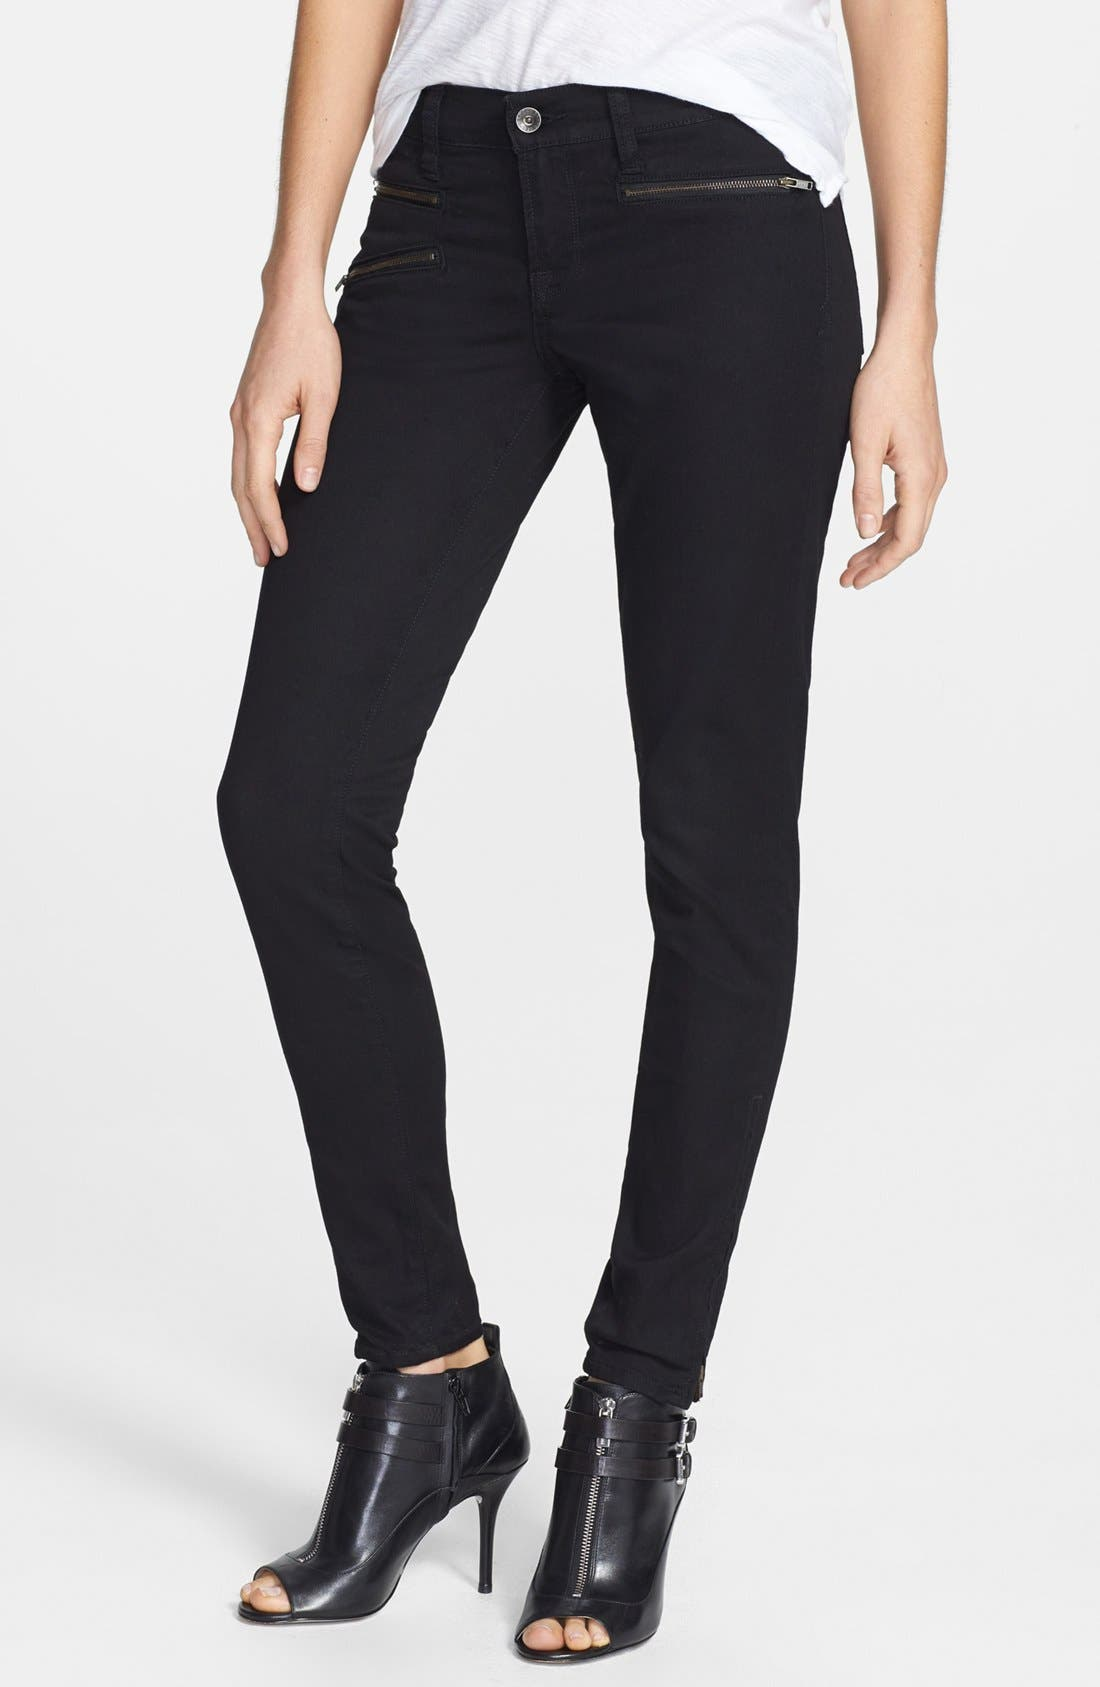 Alternate Image 1 Selected - Lucky Brand 'Charlie - Moto' Super Skinny Jeans